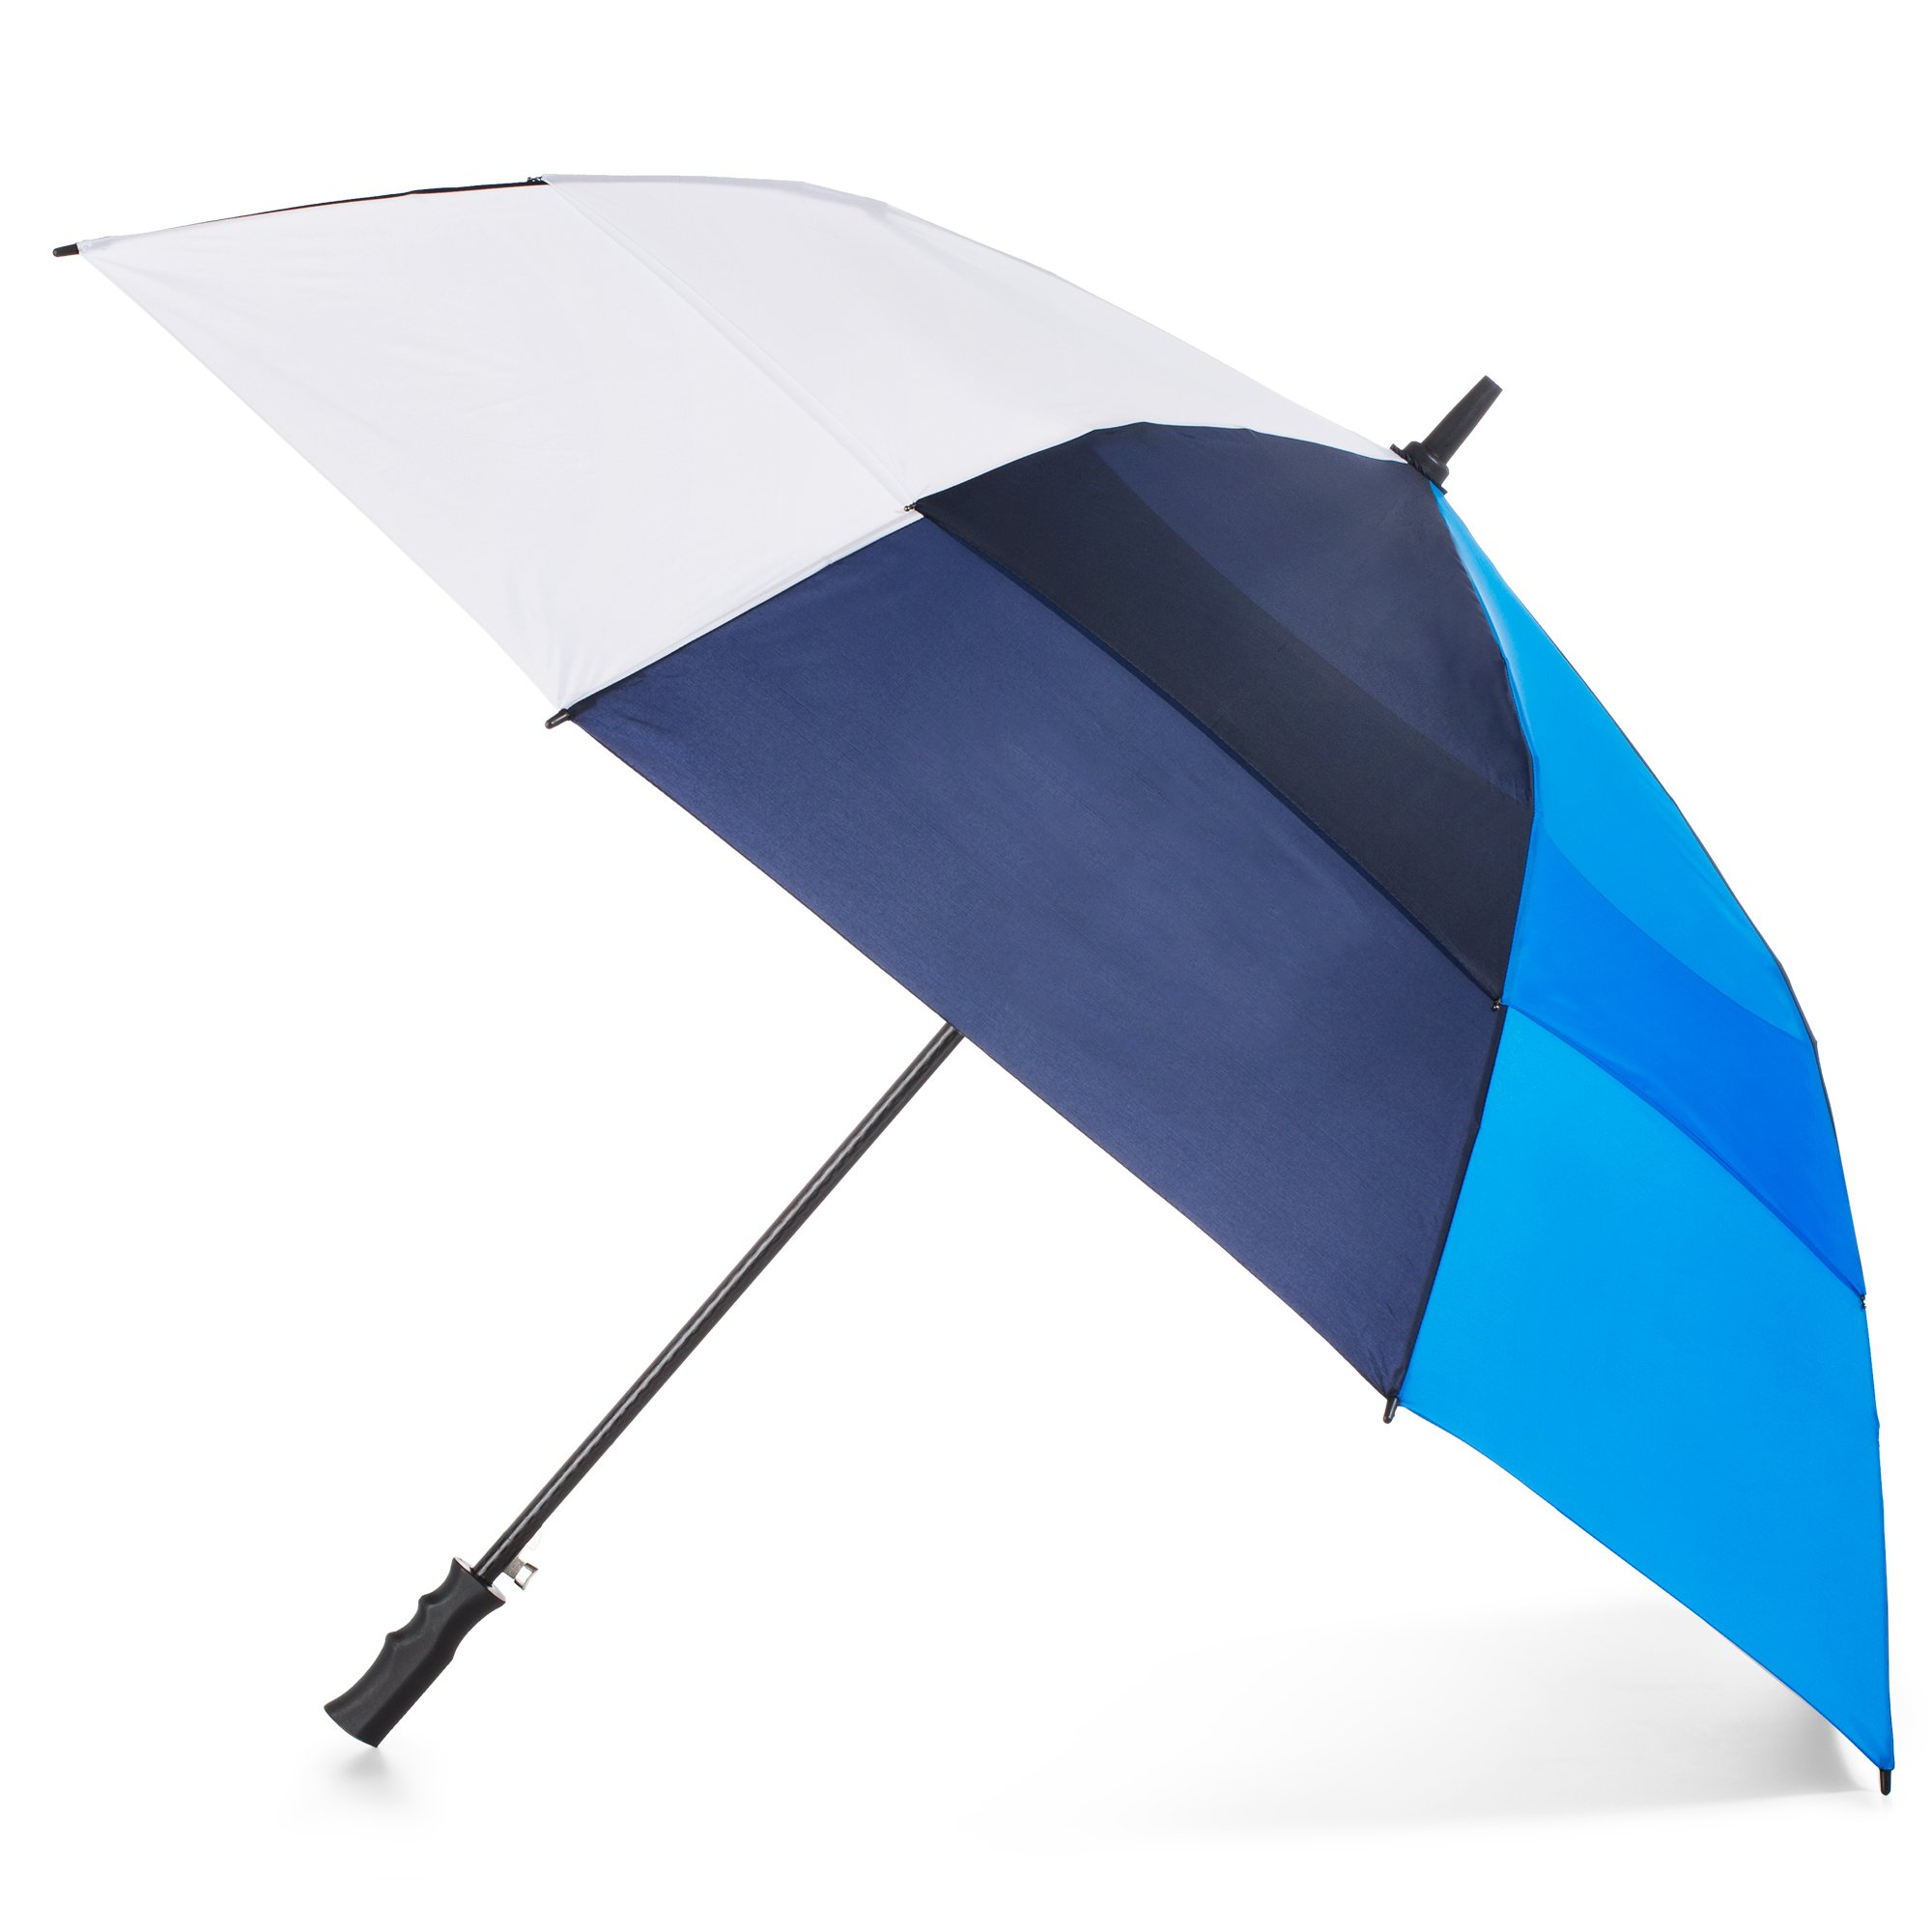 Totes Automatic Open Windproof & Water-Resistant Golf Umbrella, Navy, White, Blue by totes